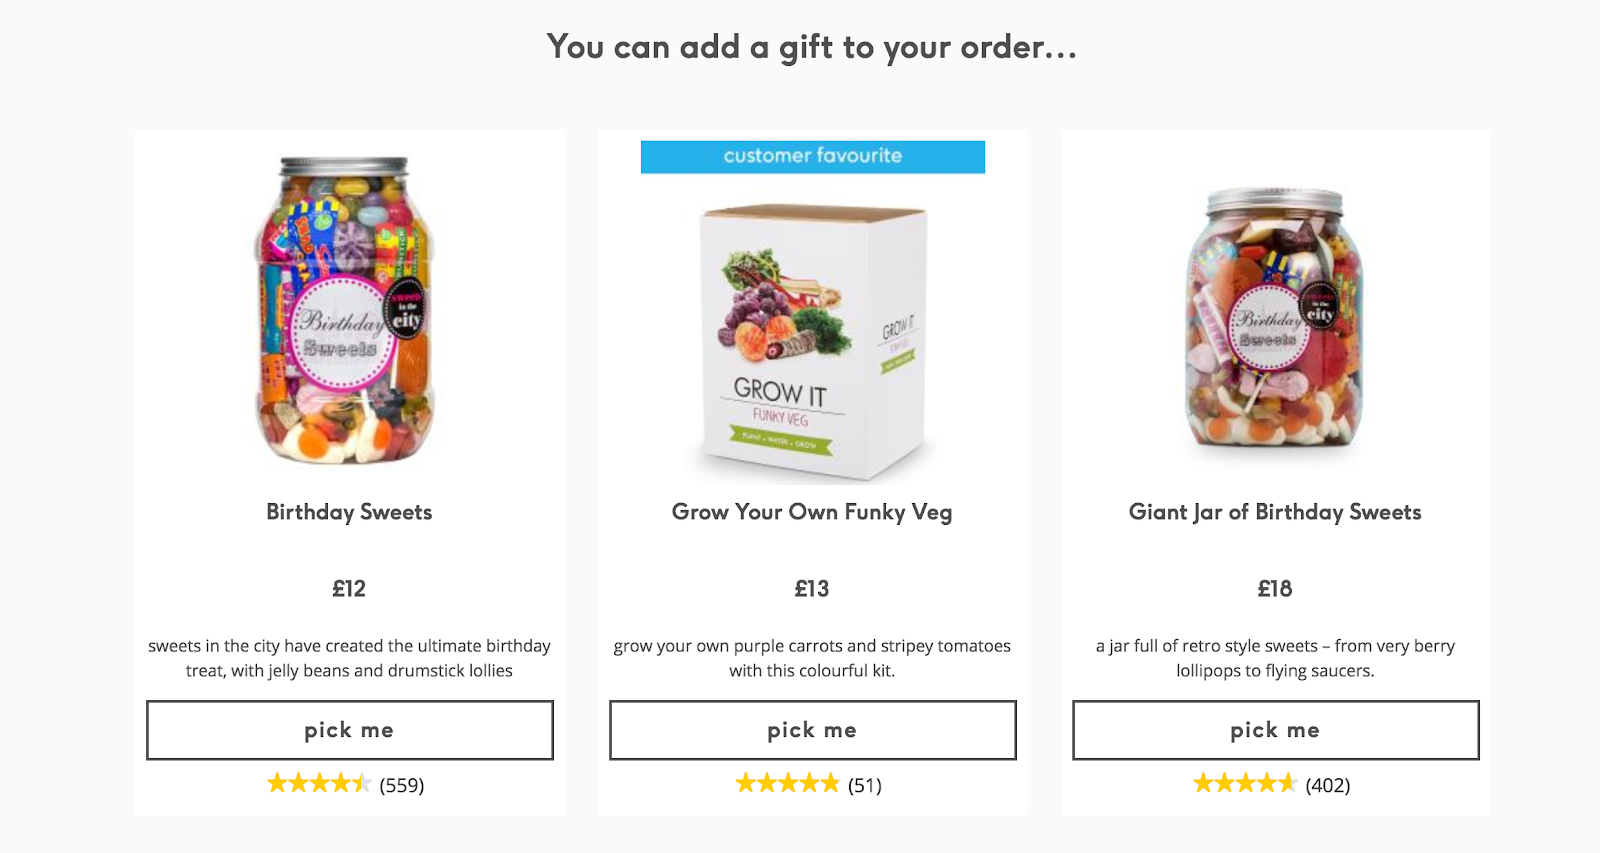 Screenshot showing a gift offer